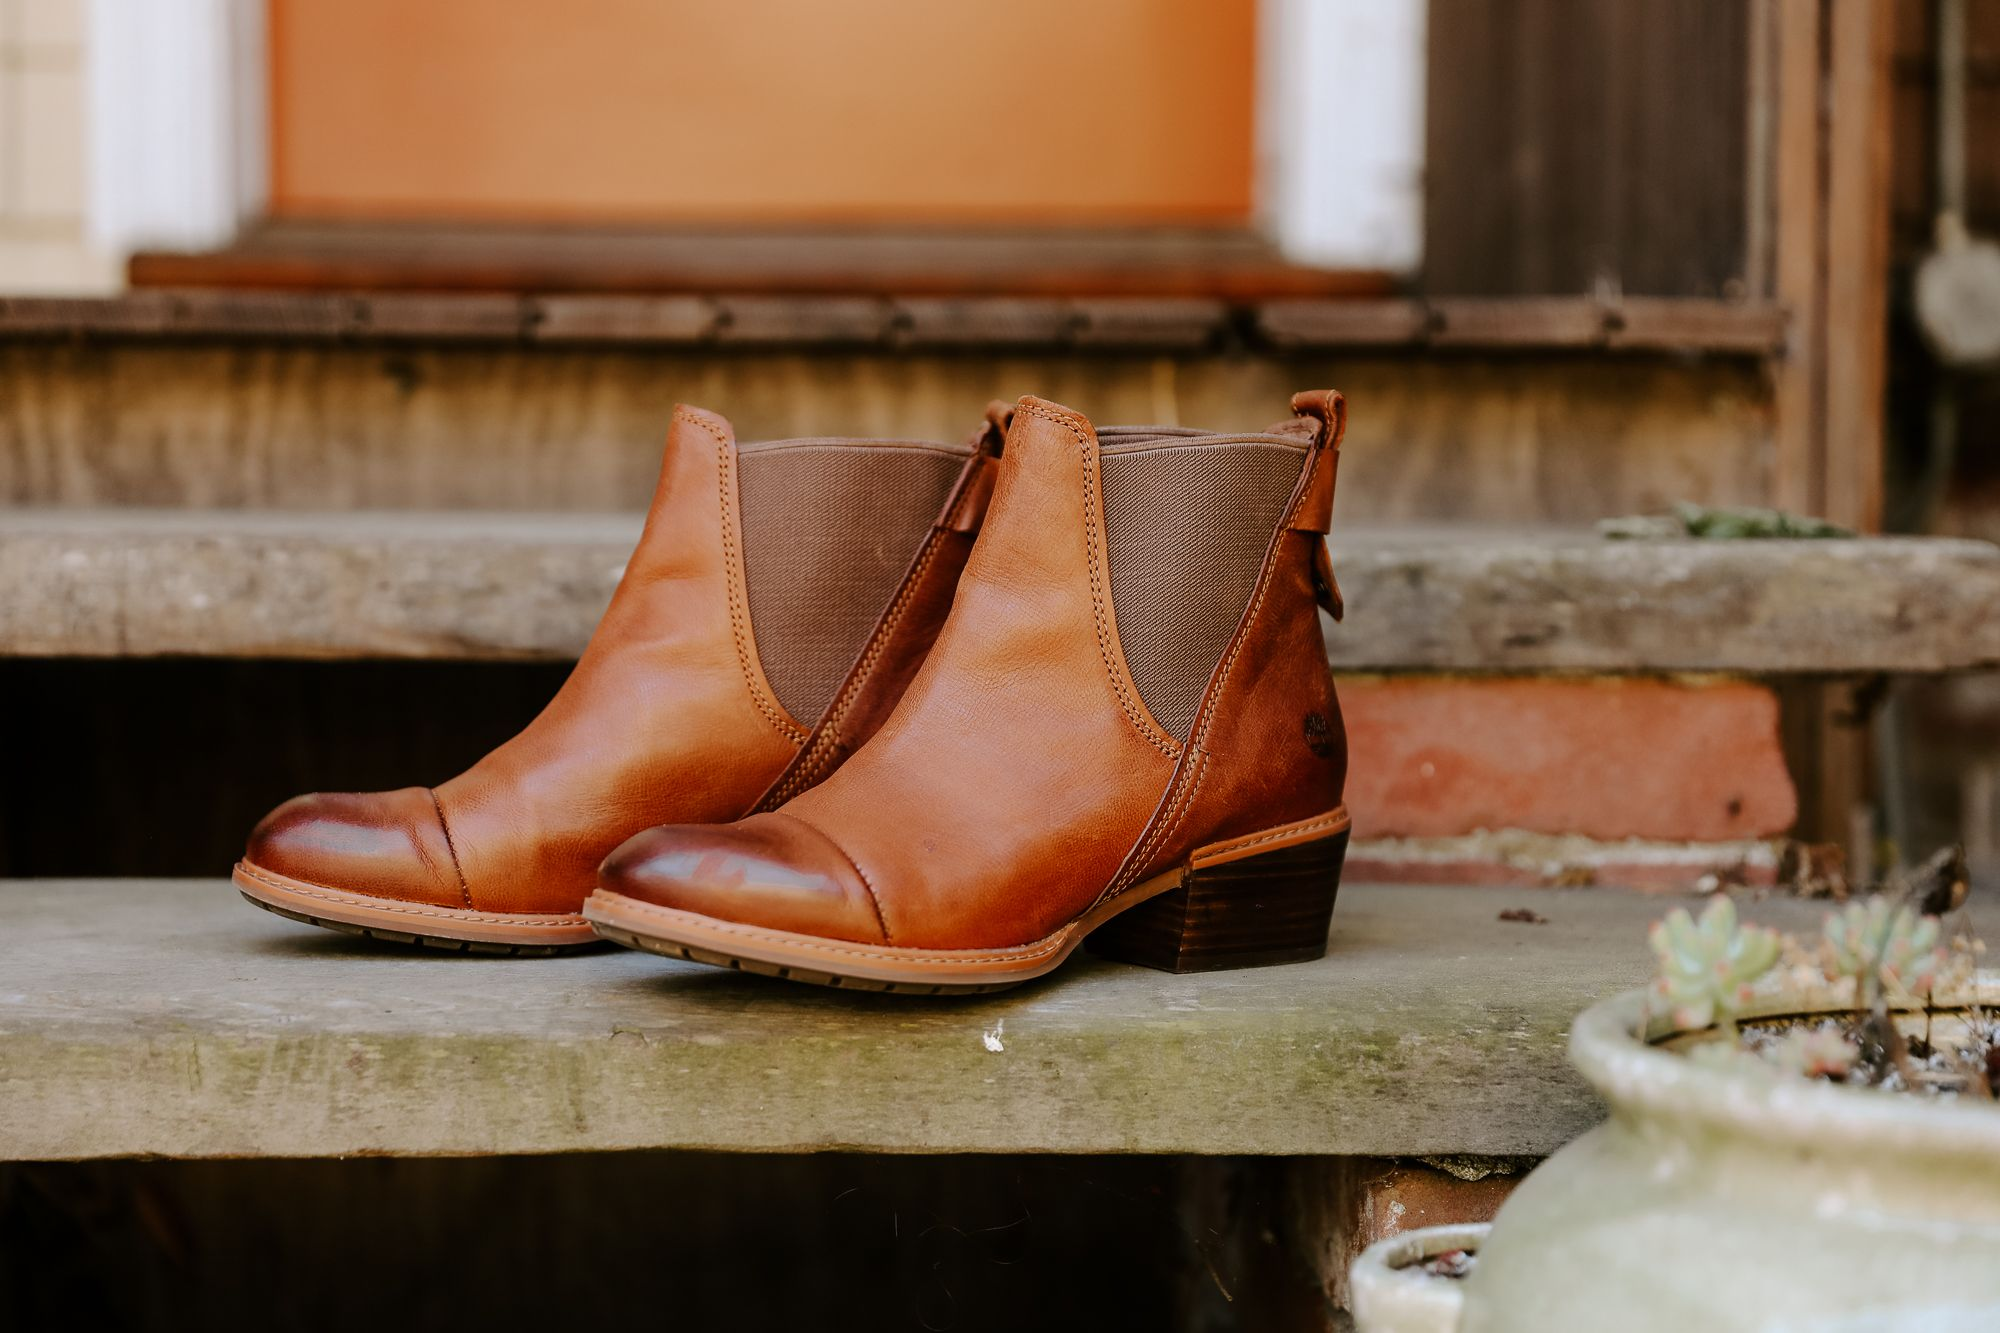 chasingkendall 's favorite new fall boots! Women's Sutherlin